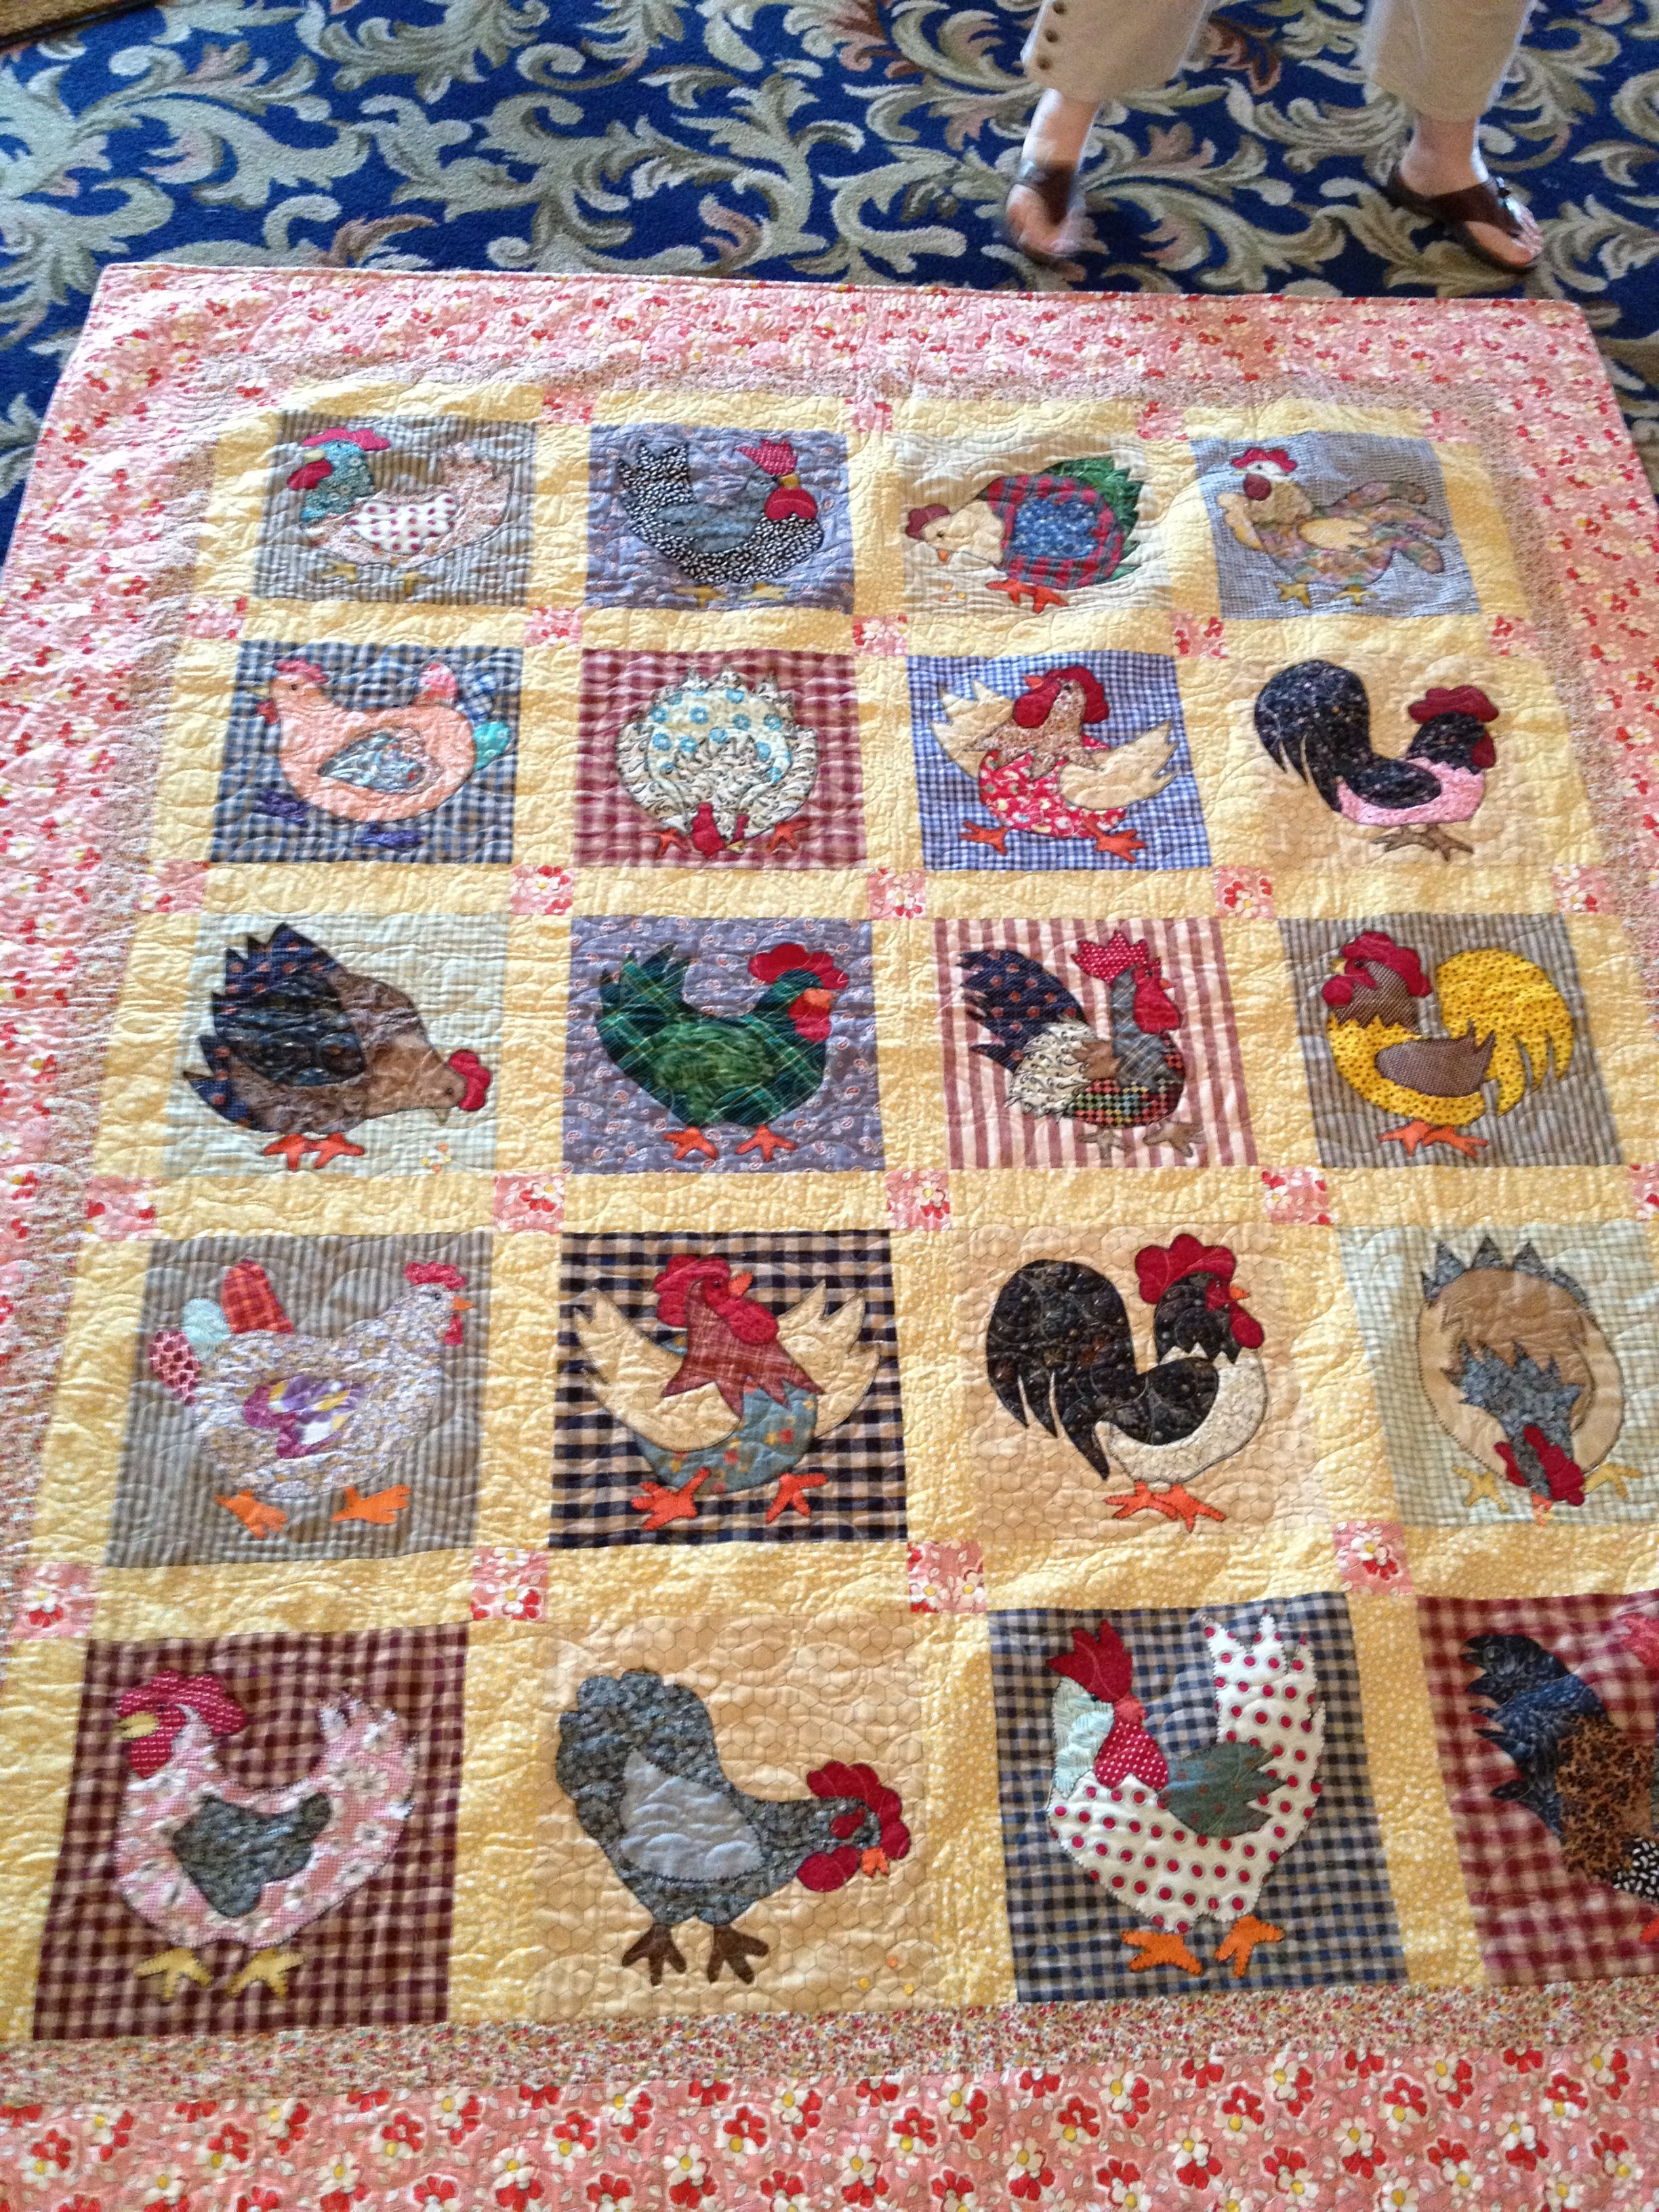 All Cooped Up Quilt Pattern | Chicken Coop | Pinterest | Coops ... : rooster quilt patterns - Adamdwight.com